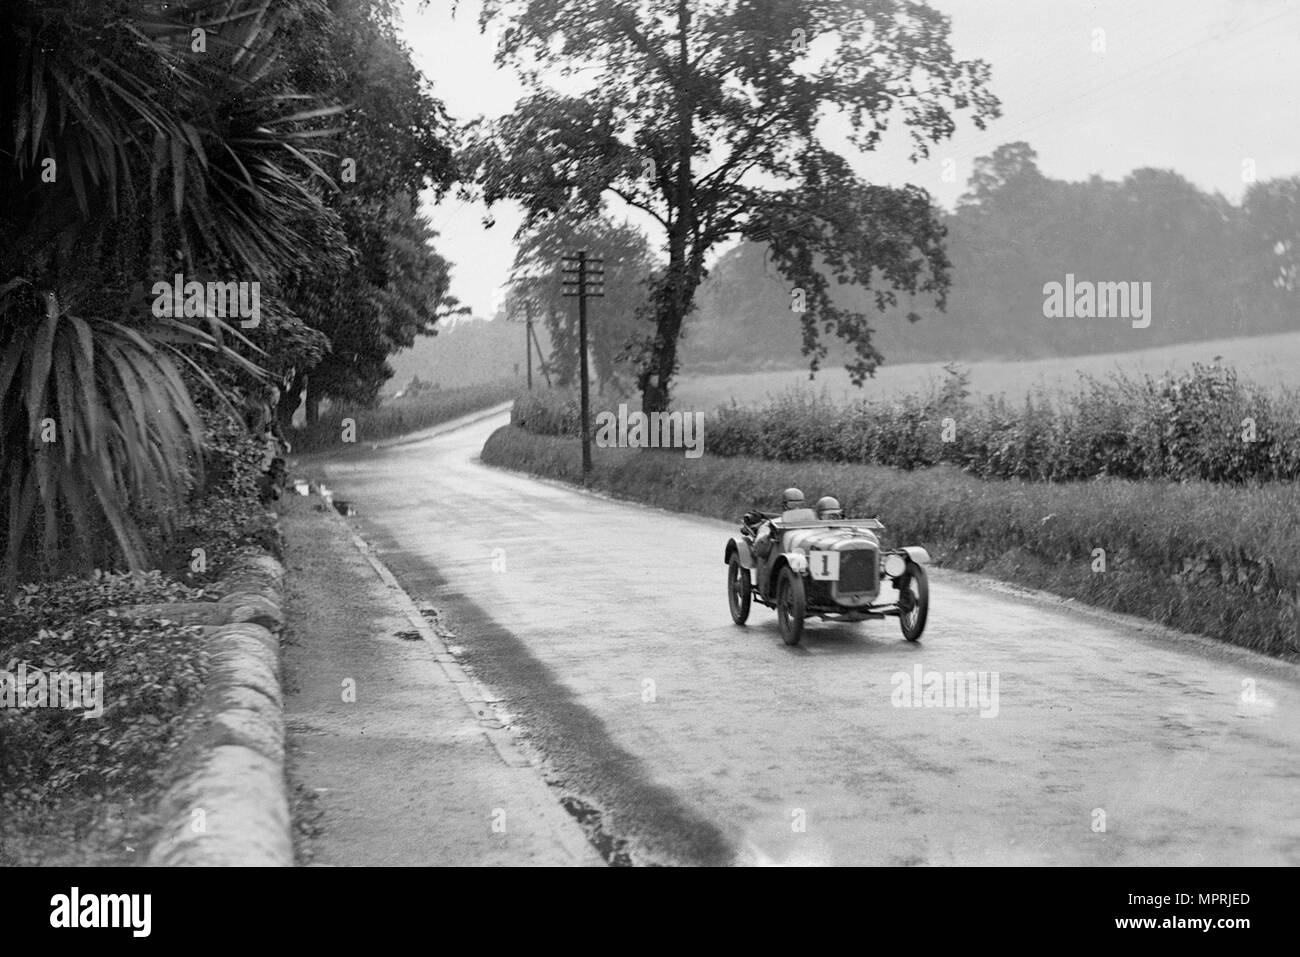 Austin Ulster of Archie Frazer-Nash competing in the RAC TT Race, Ards Circuit, Belfast, 1929 Artist: Bill Brunell. - Stock Image